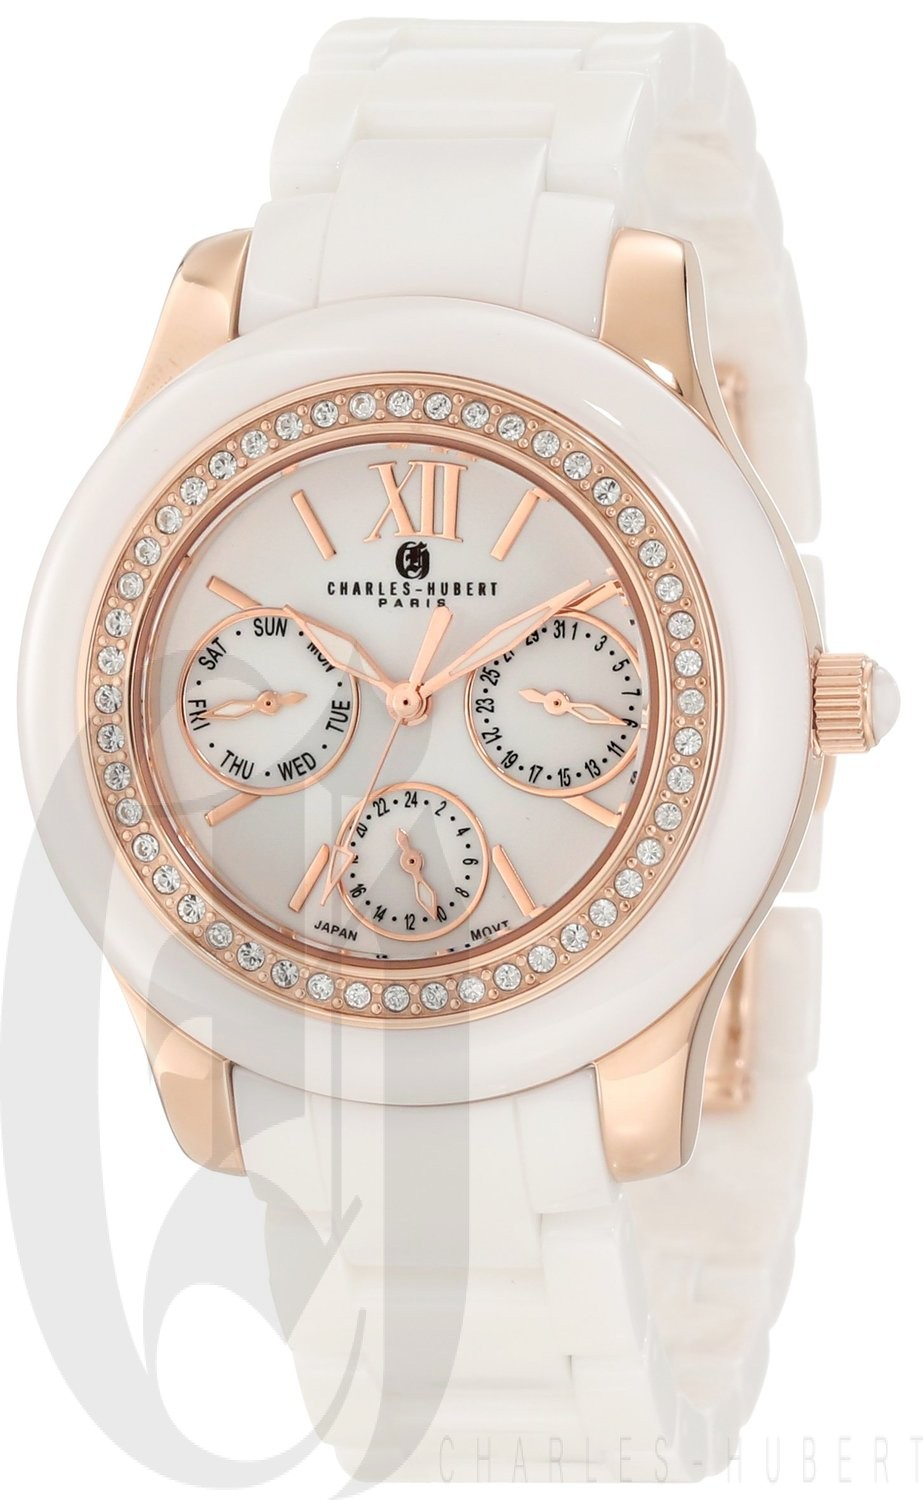 Charles-Hubert Paris Women's Rose-Gold Plated Stainless Steel and Ceramic Quartz Watch